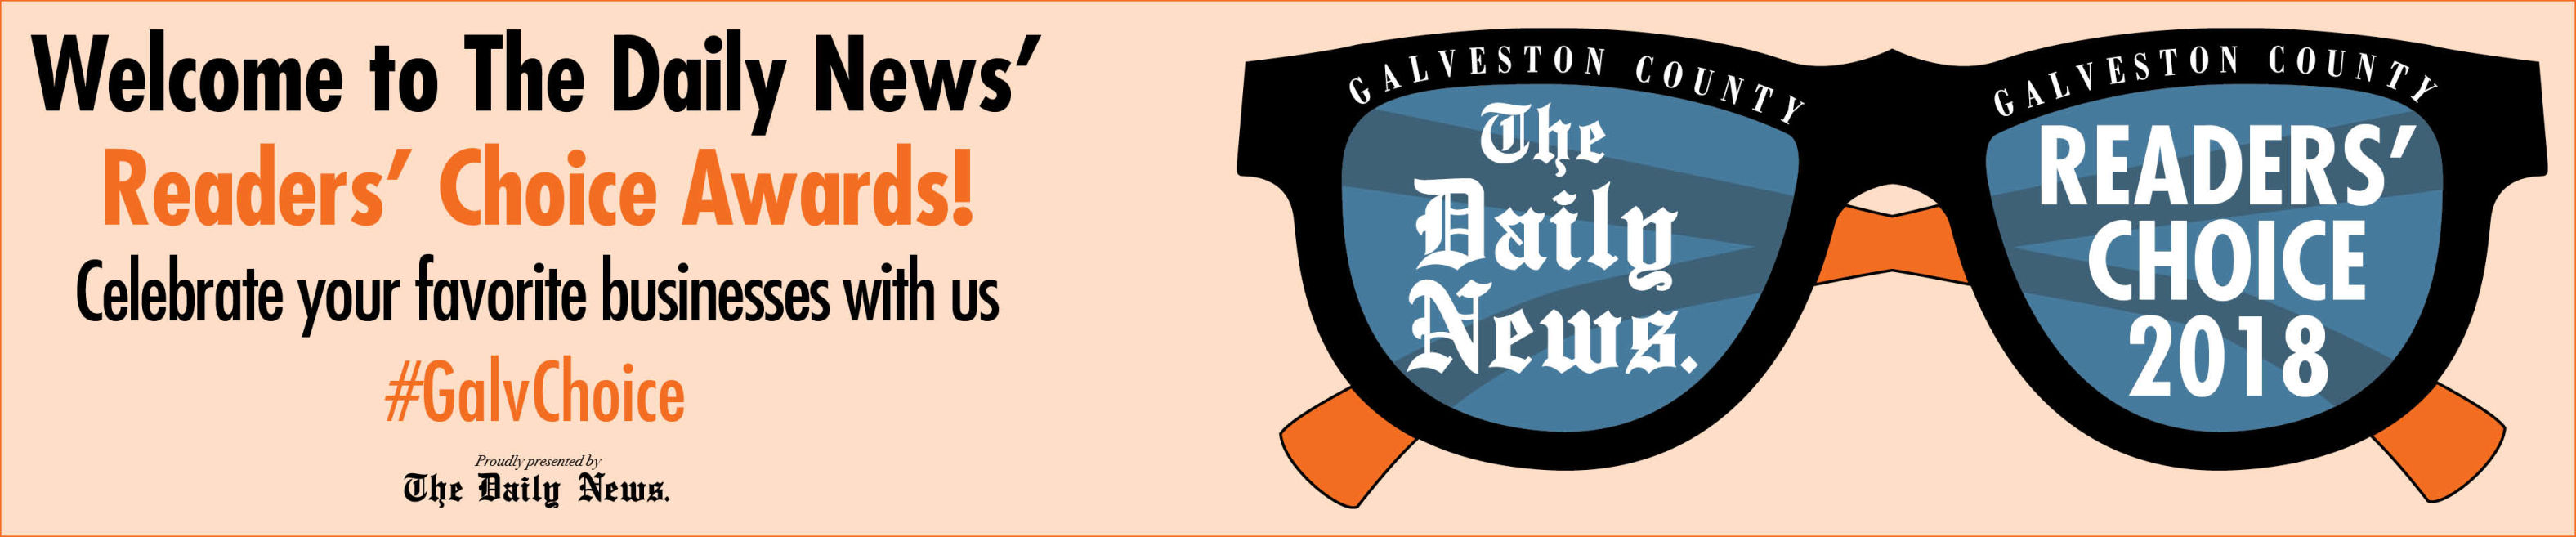 The Daily News Readers' Choice